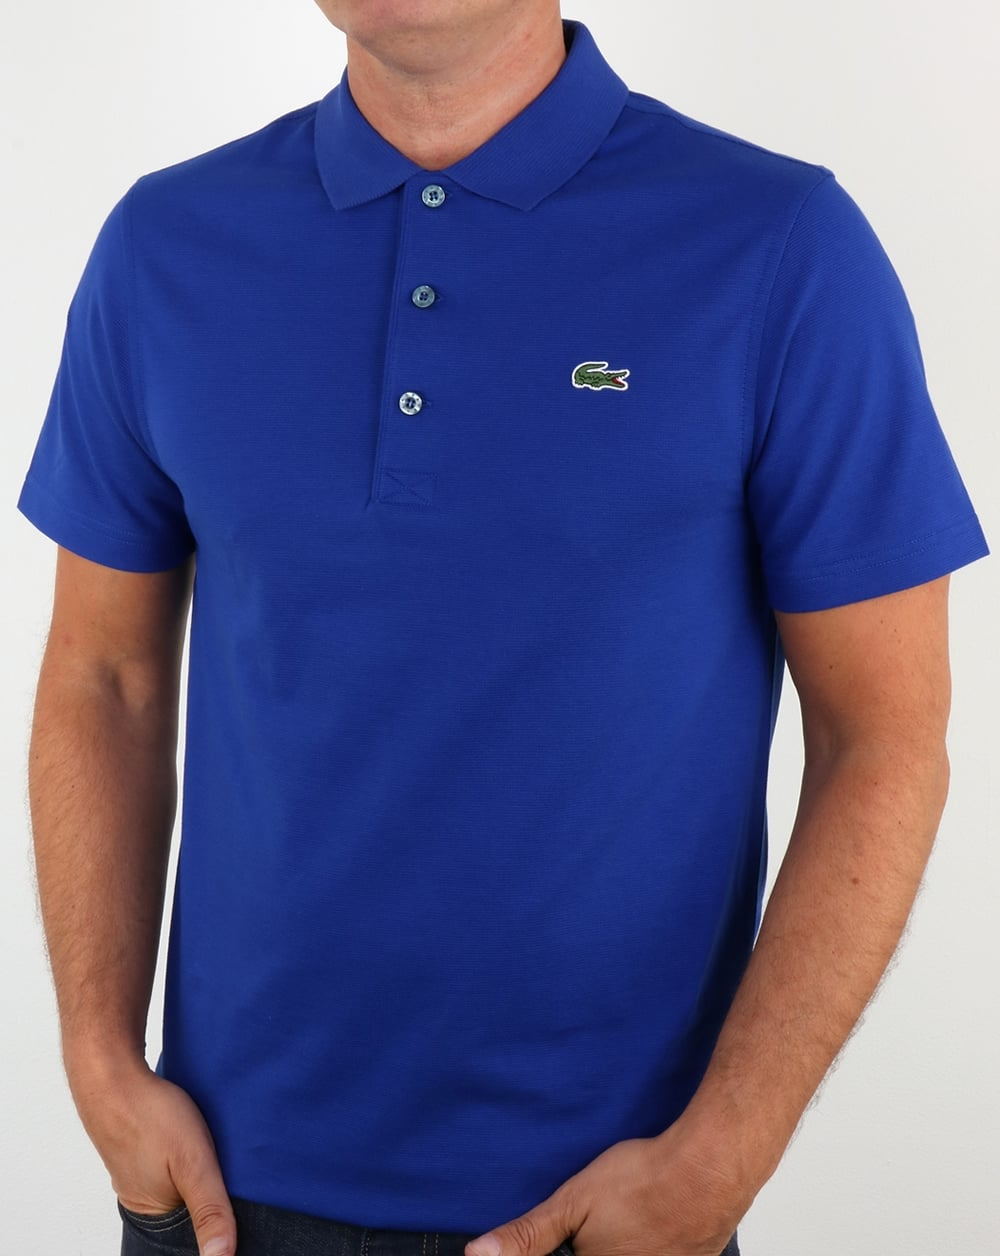 Lacoste polo shirt french blue men 39 s pique cotton - Lacoste poloshirt weiay ...